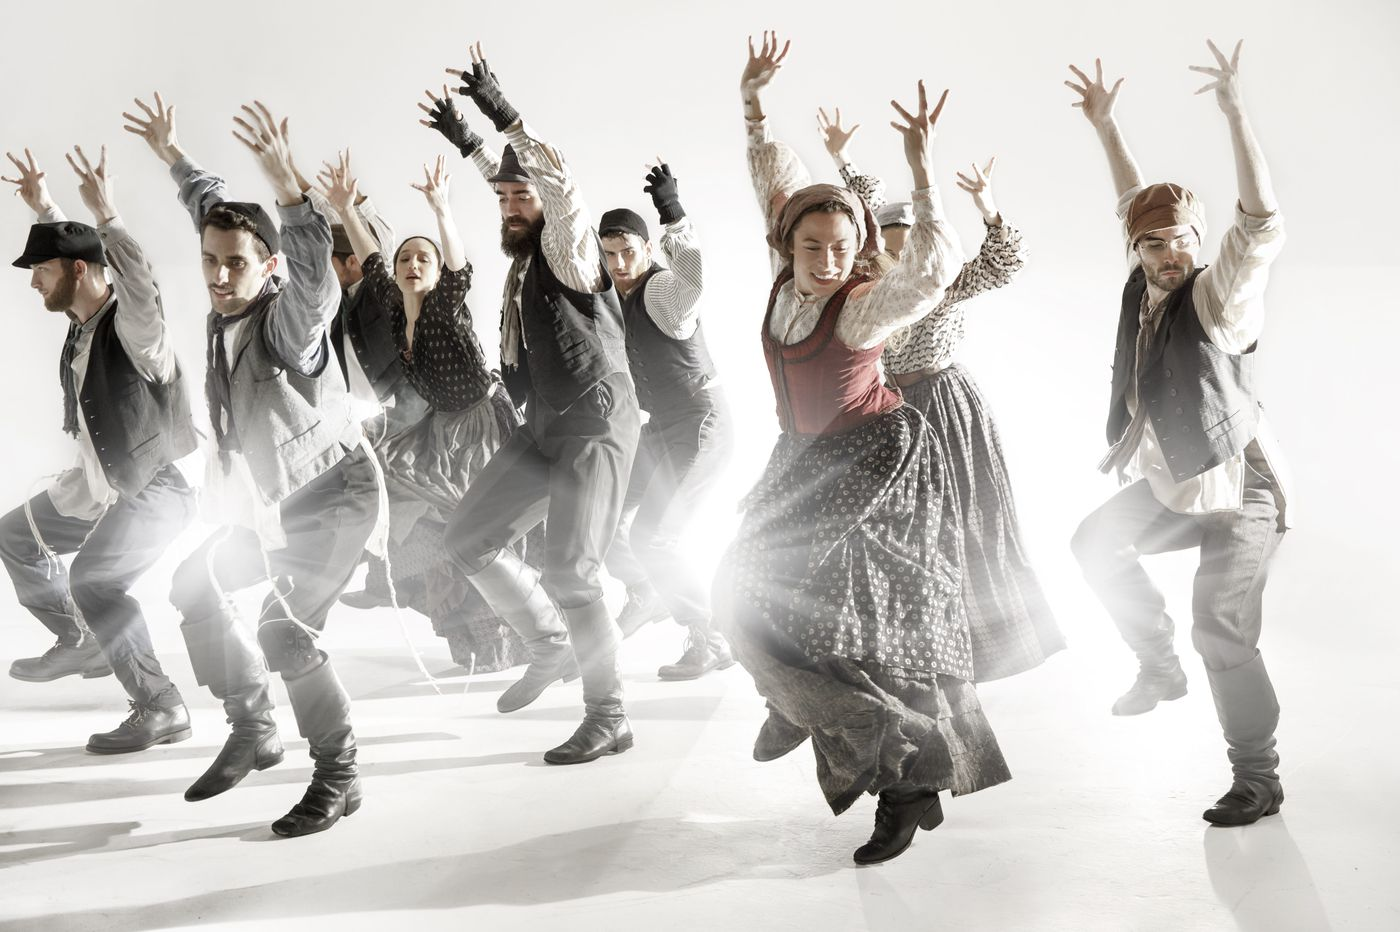 Philly fall theater: 'Once,' James Ijames, 'Fiddler on the Roof,' punk vampires, 'Matilda,' more